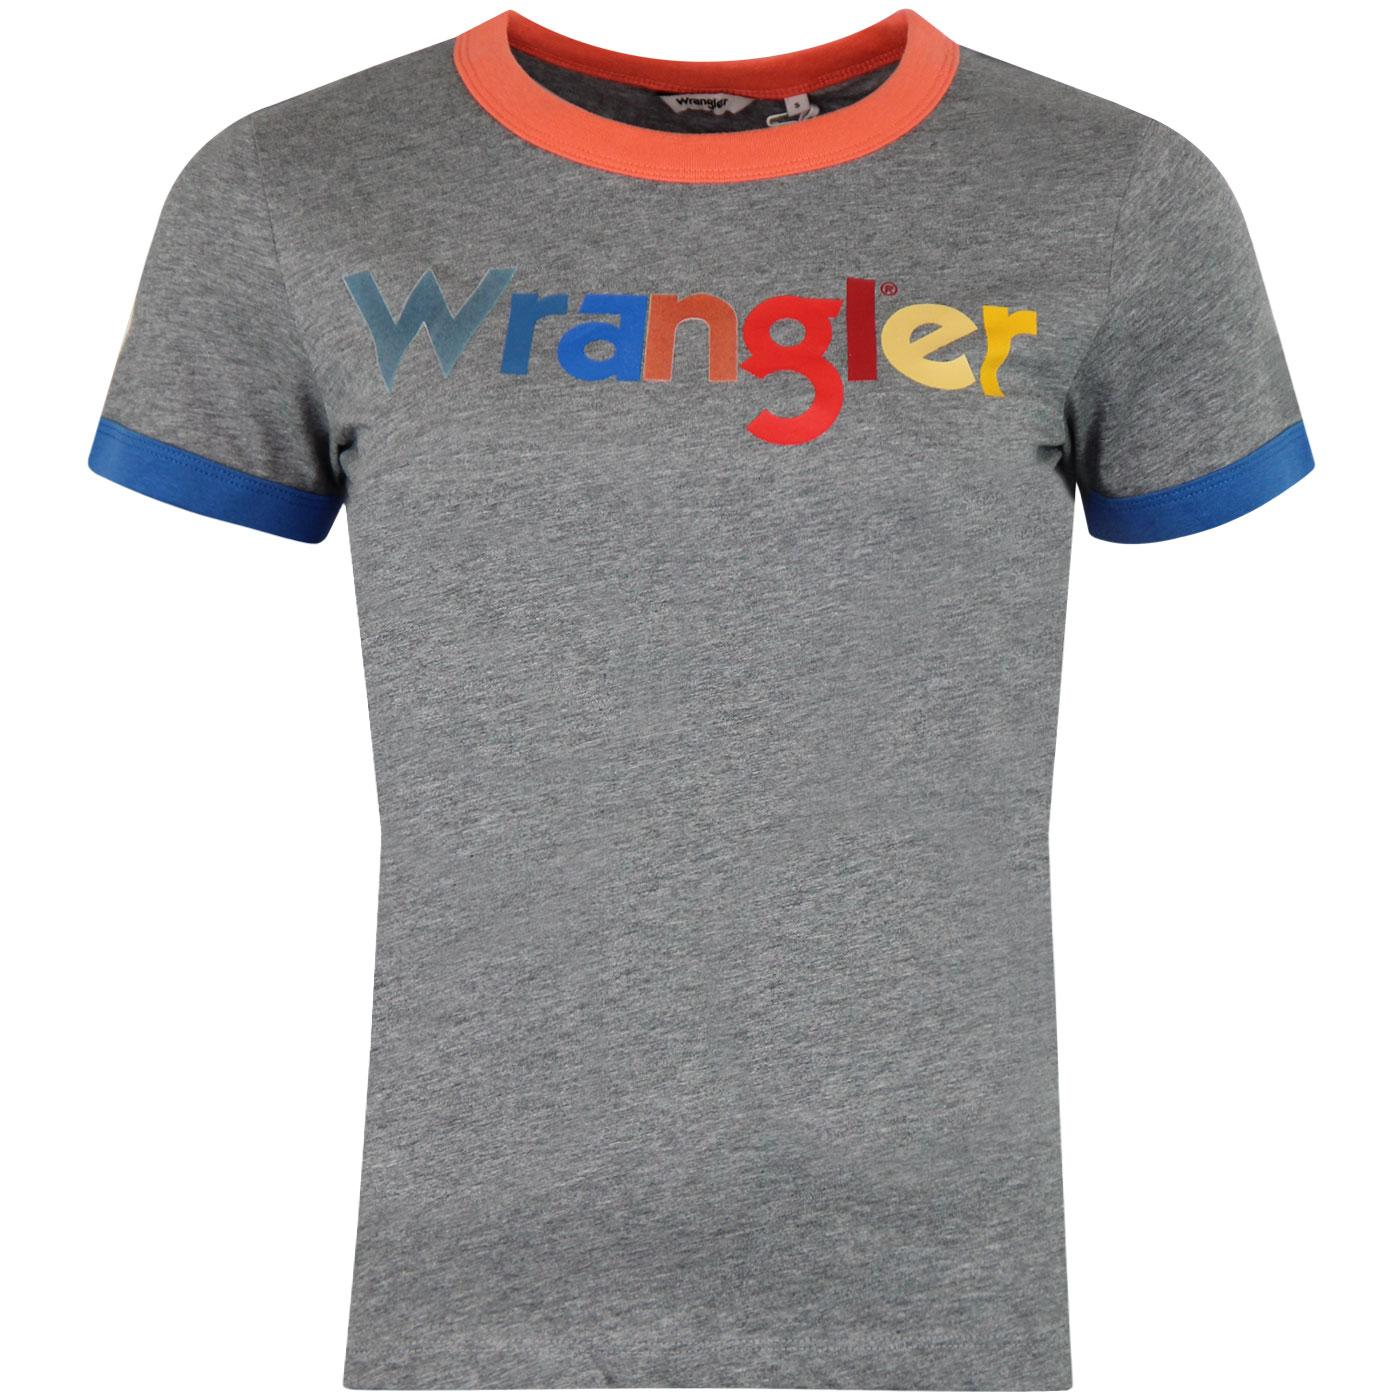 WRANGLER Women's Multicoloured Logo Ringer Tee